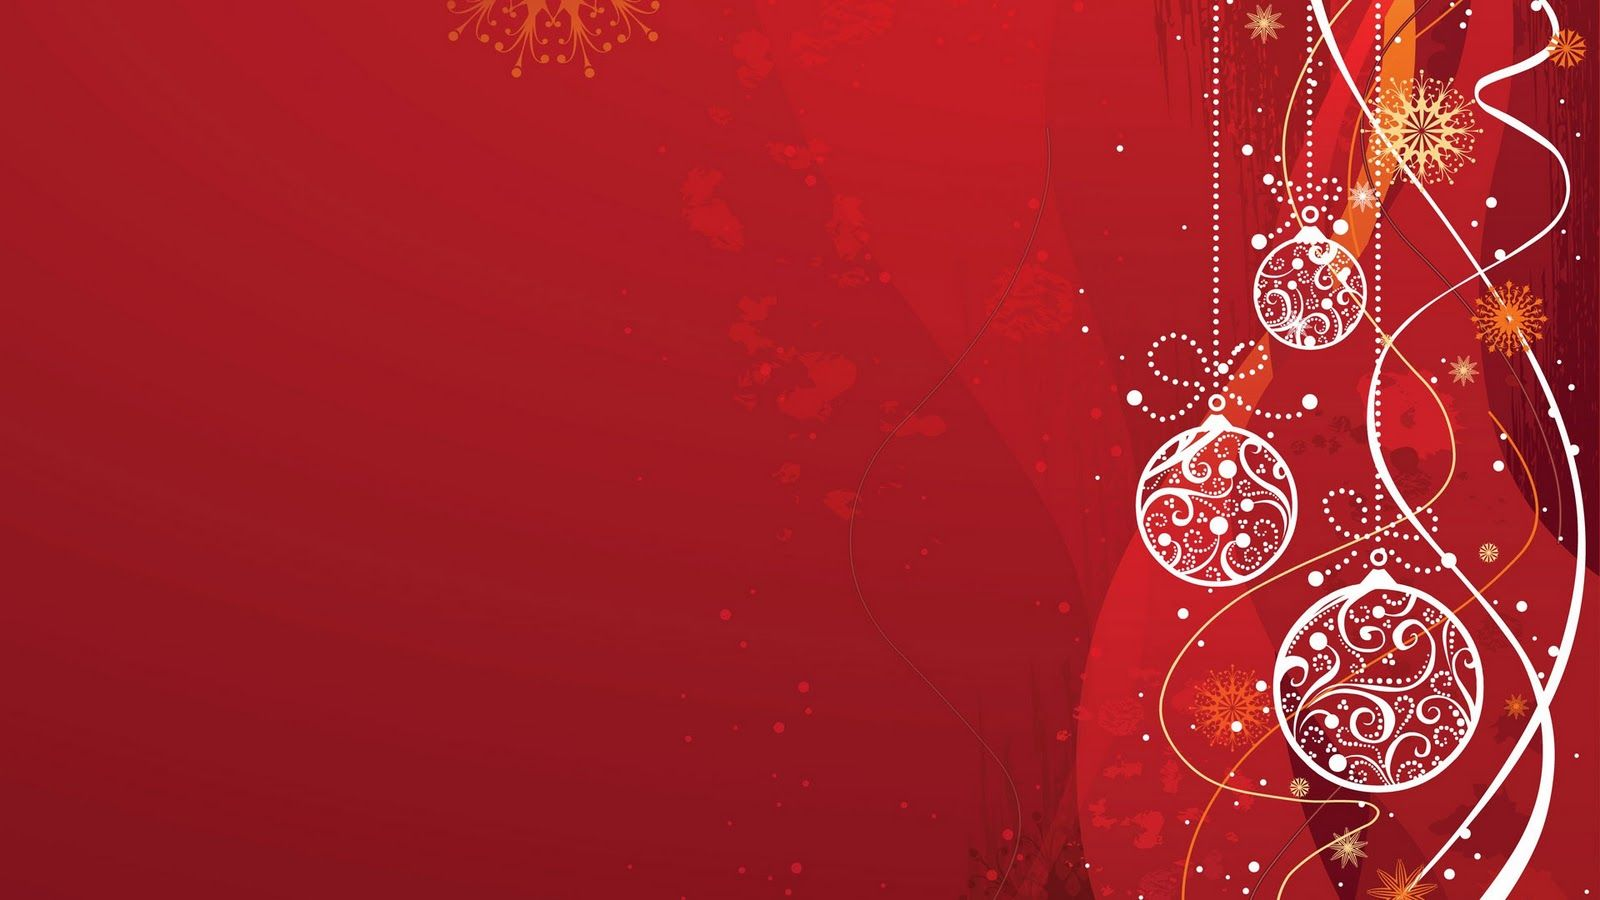 christmas backgrounds hd 1600x900px ~ christmas desktop